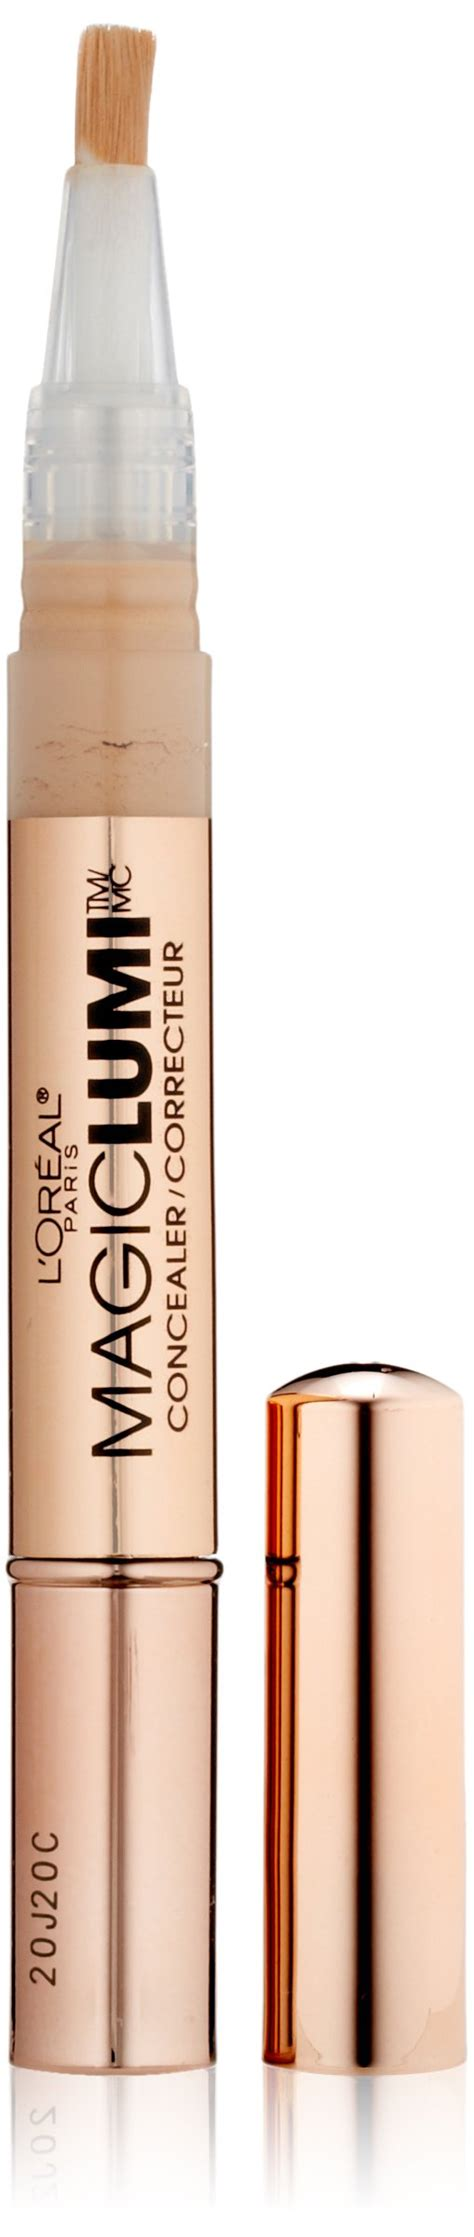 L Oreal Magic Lumi Primer l oreal magic lumi primer size 0 68